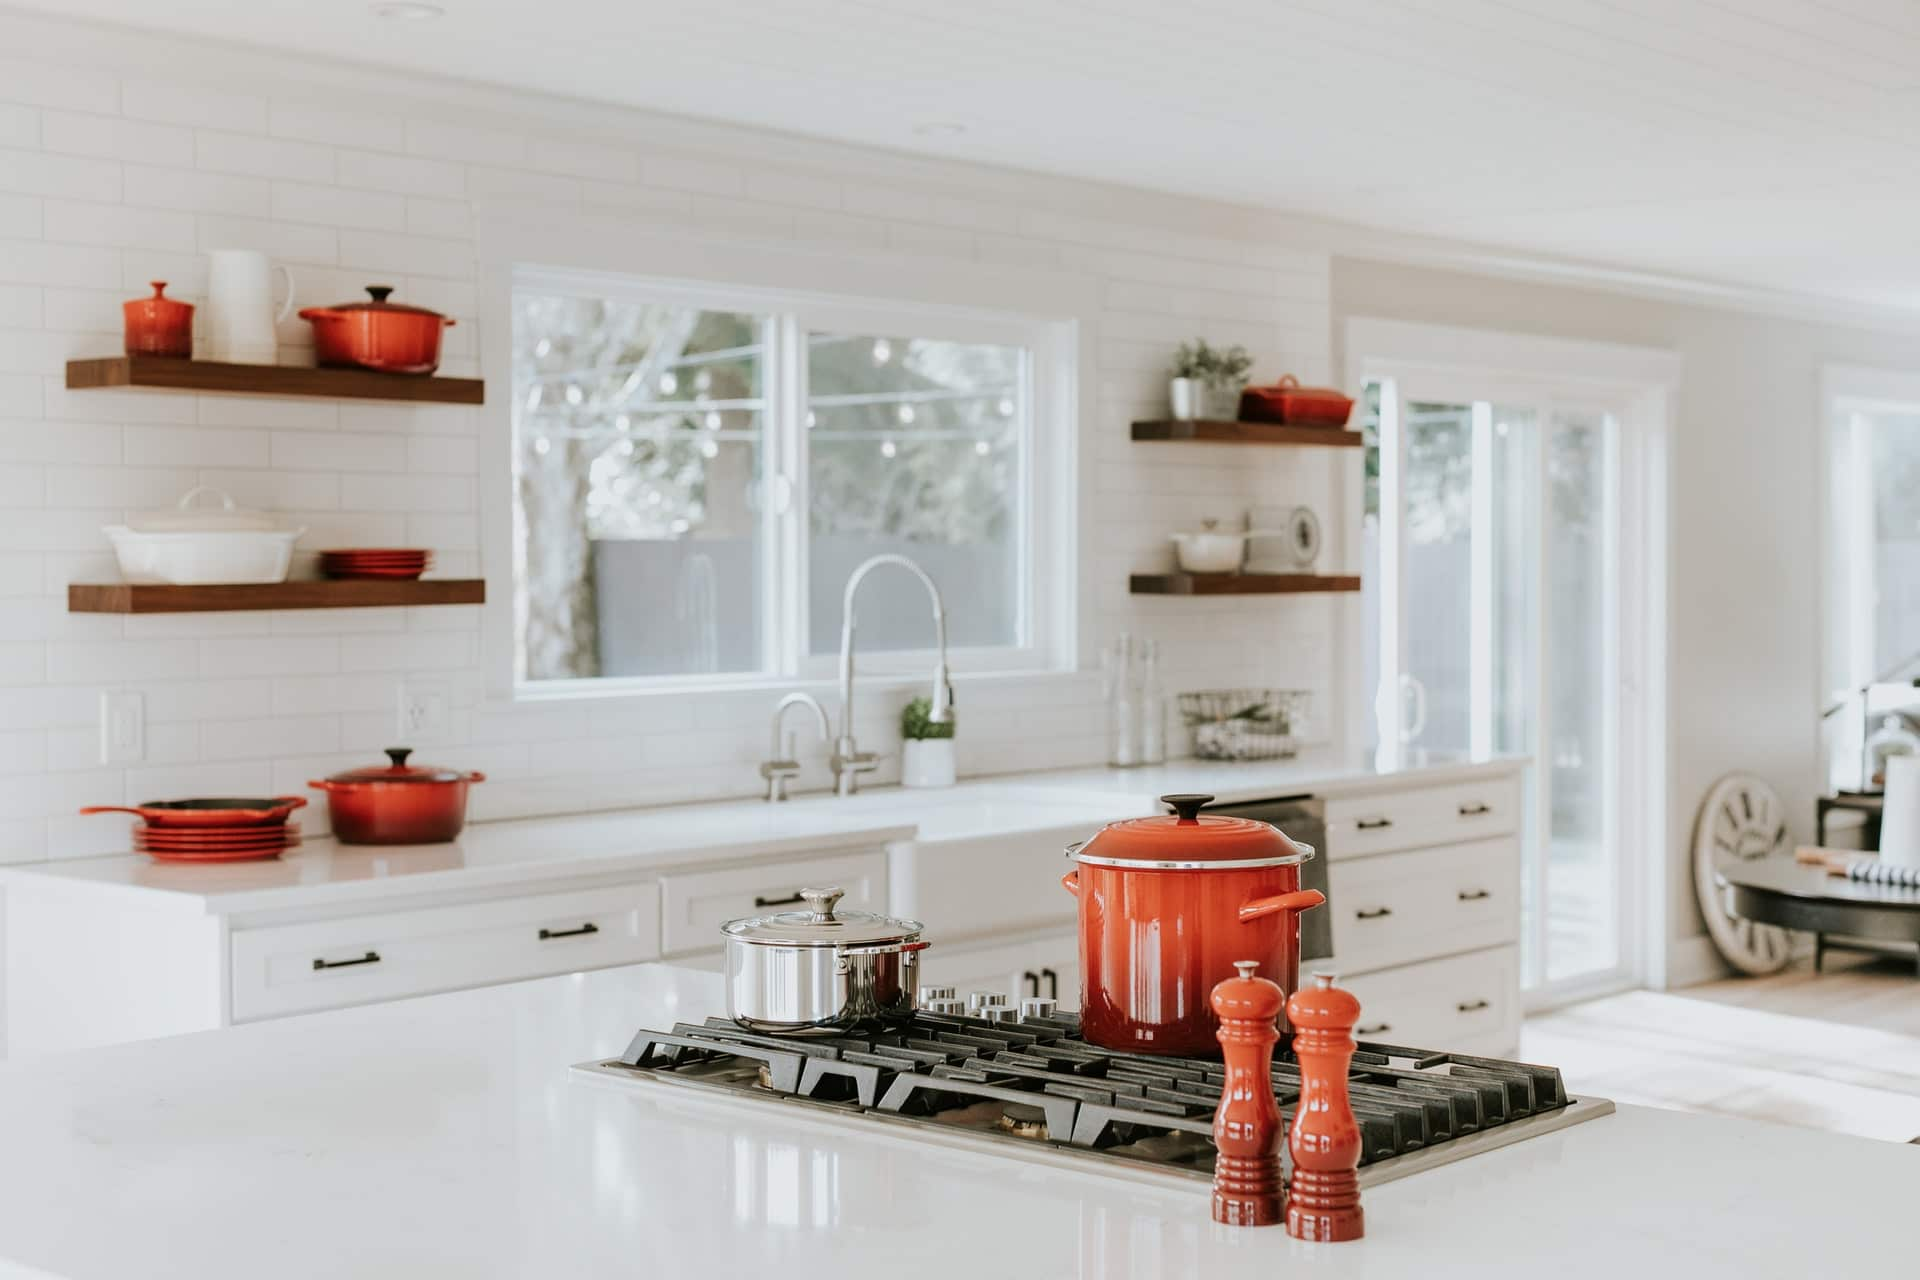 Functional kitchen with shelves